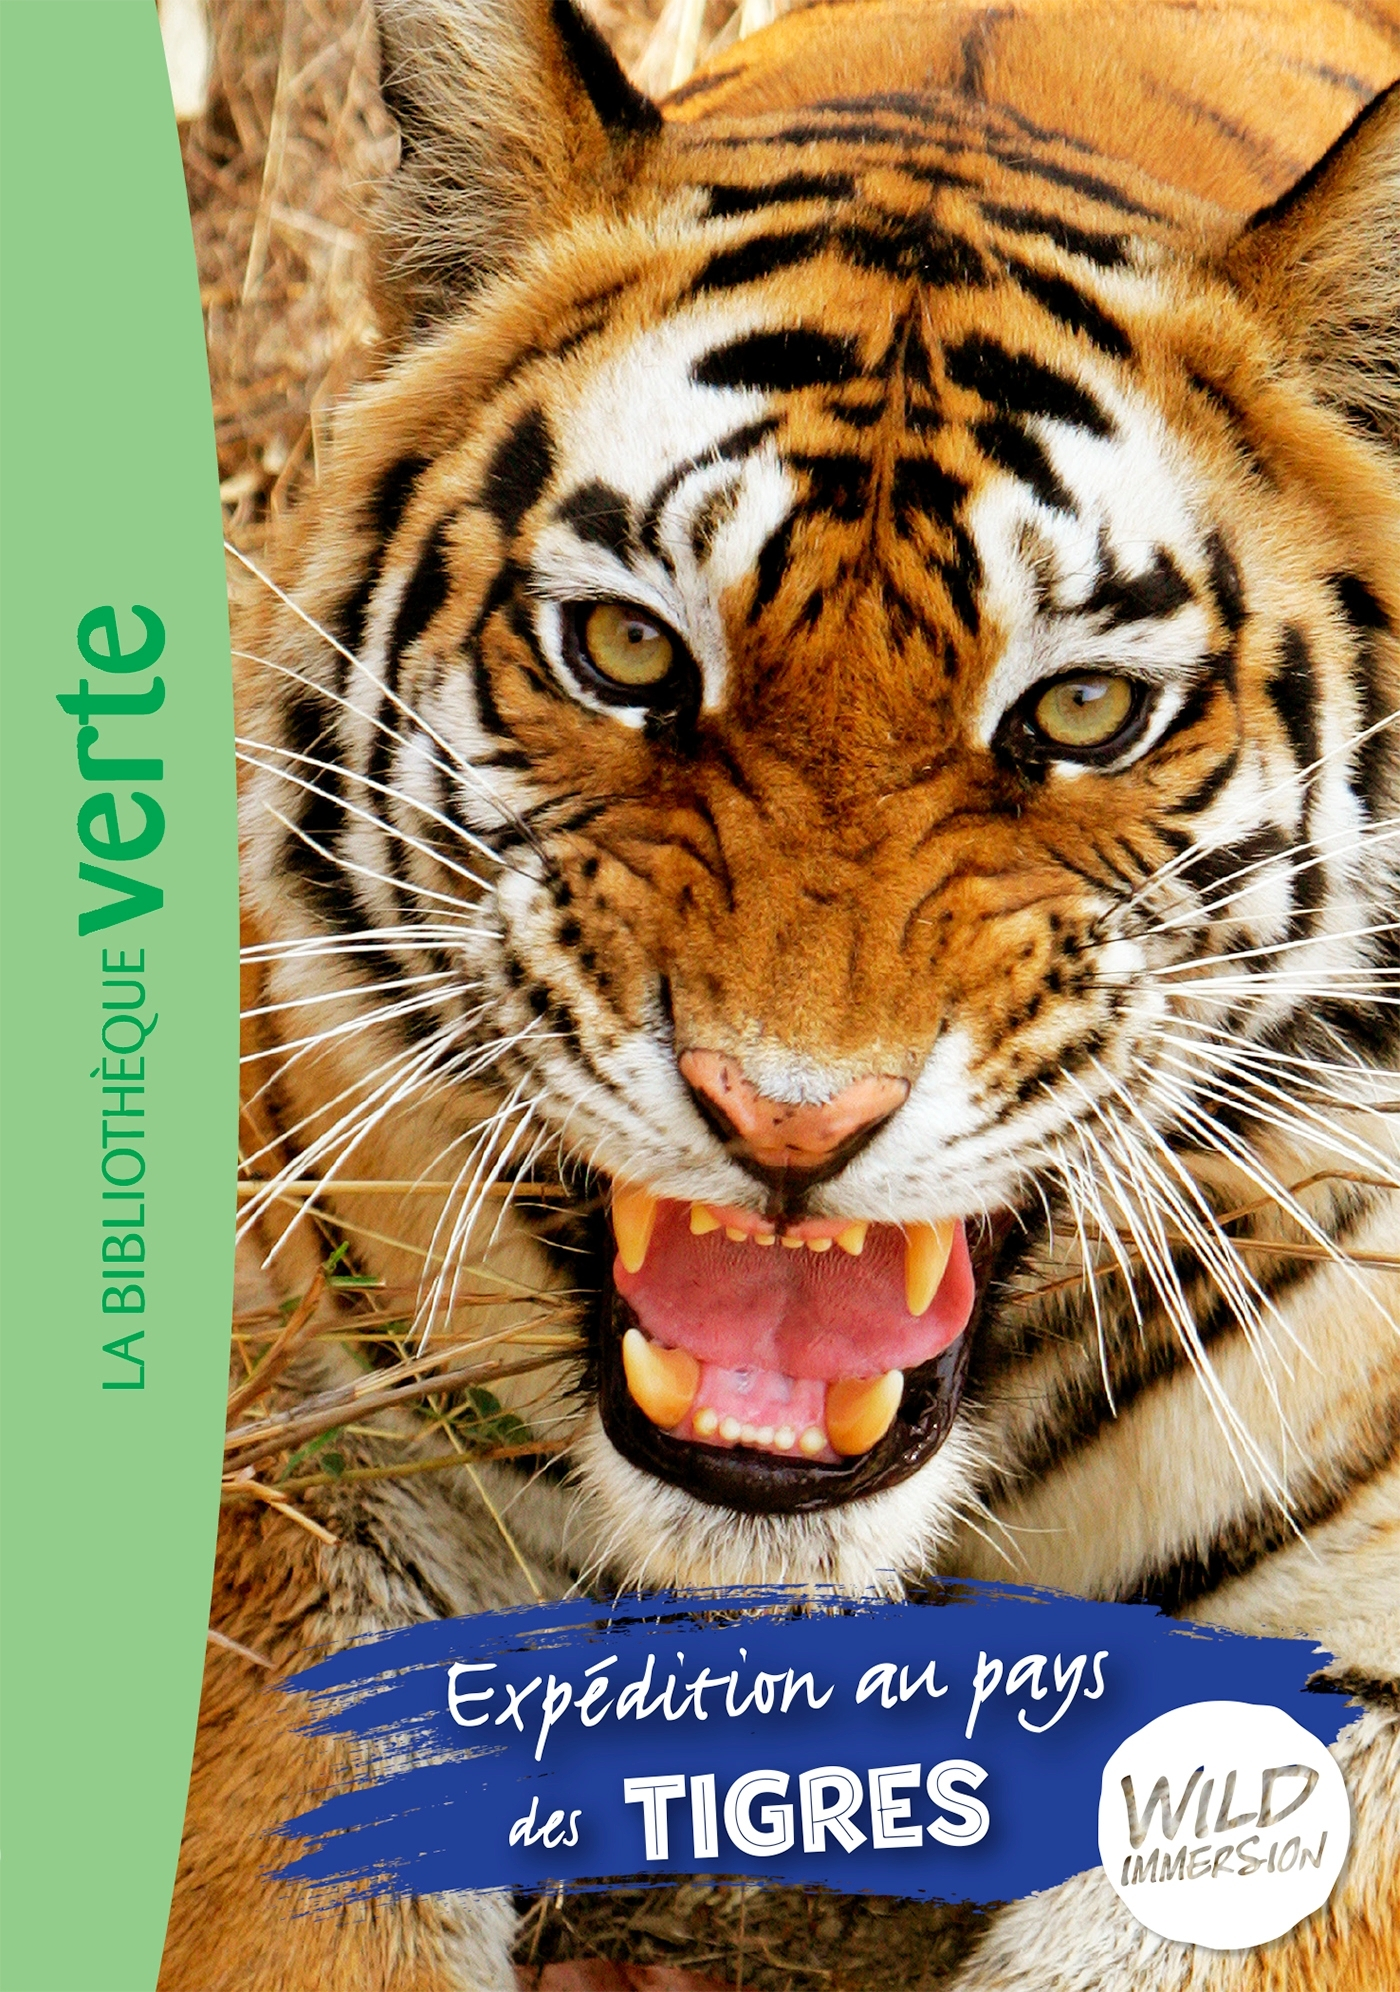 THE WILD IMMERSION - T02 - WILD IMMERSION 02 - EXPEDITION AU PAYS DES TIGRES